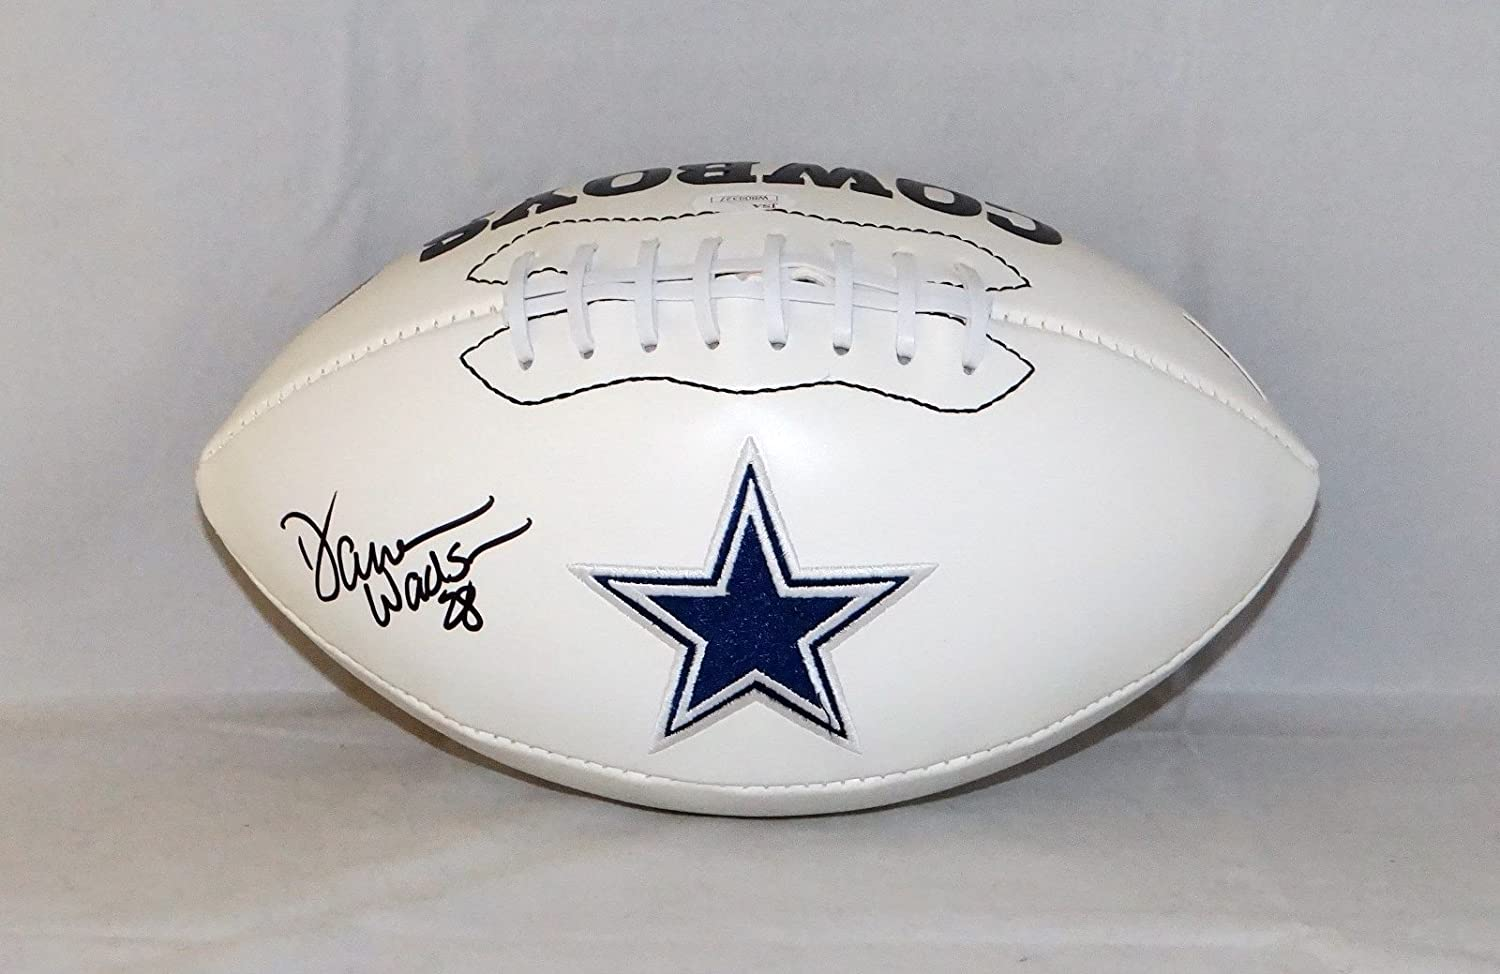 Darren Woodson Autographed Dallas Cowboys Logo Football- JSA W Auth